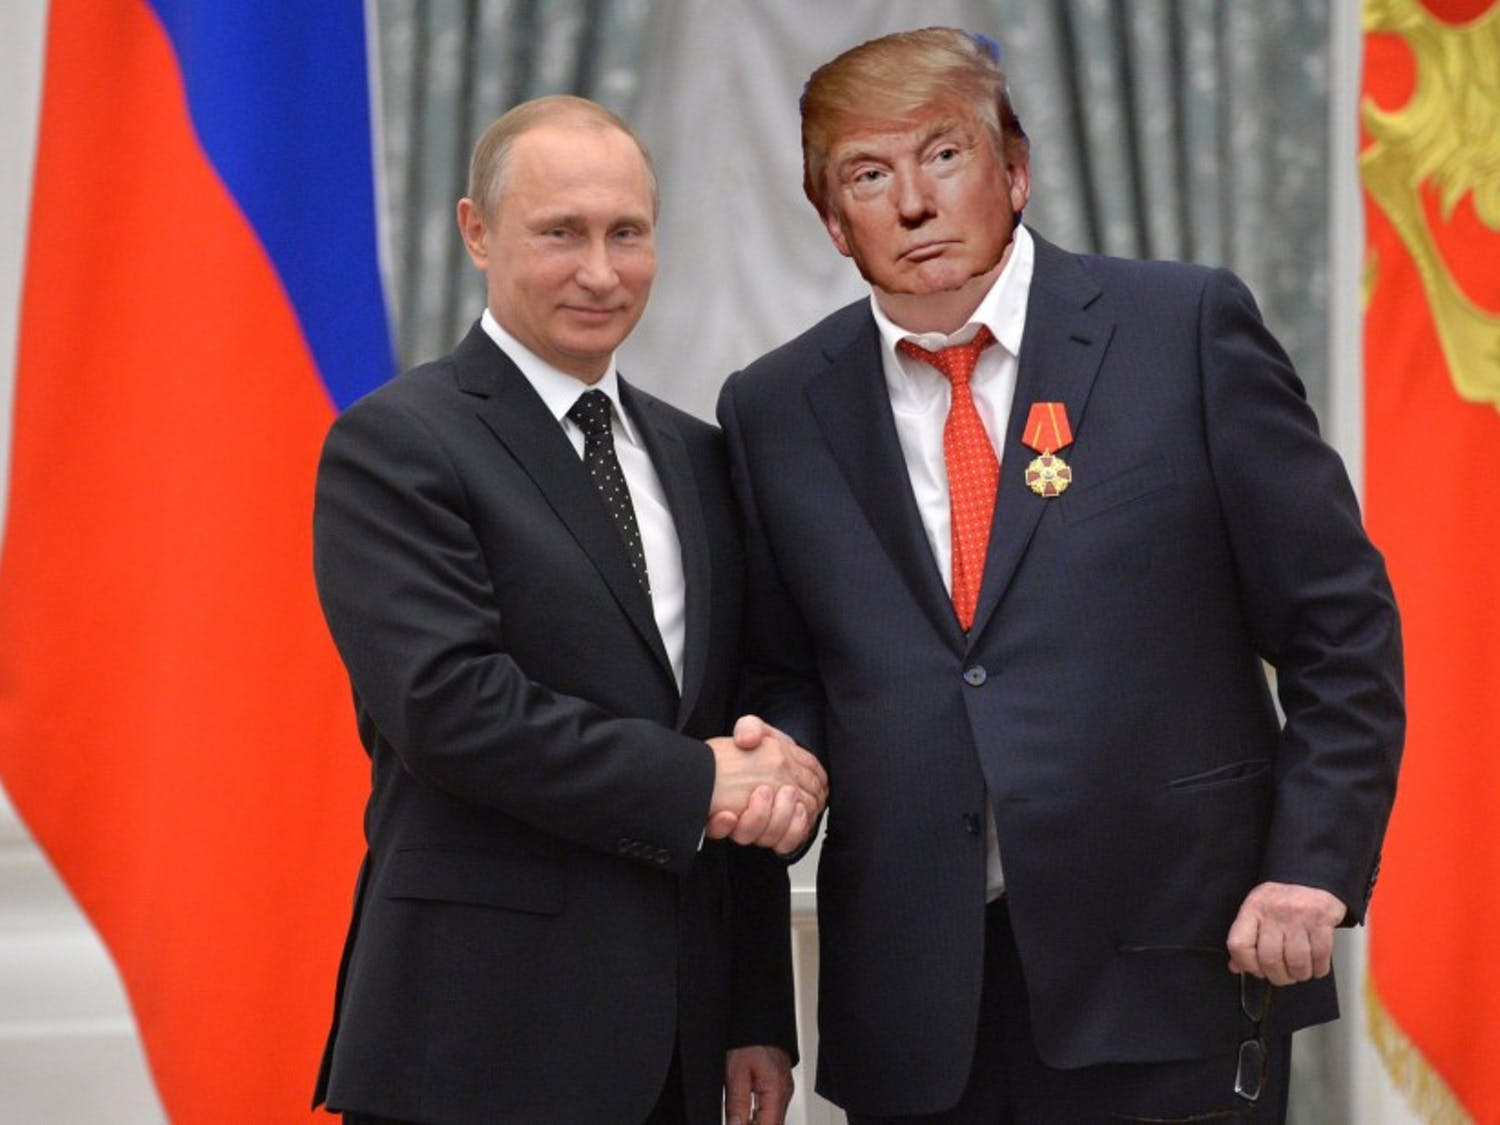 """Putin awarding comrade Donald Trump the highly coveted Russian award for """"Best Golden Shower."""""""